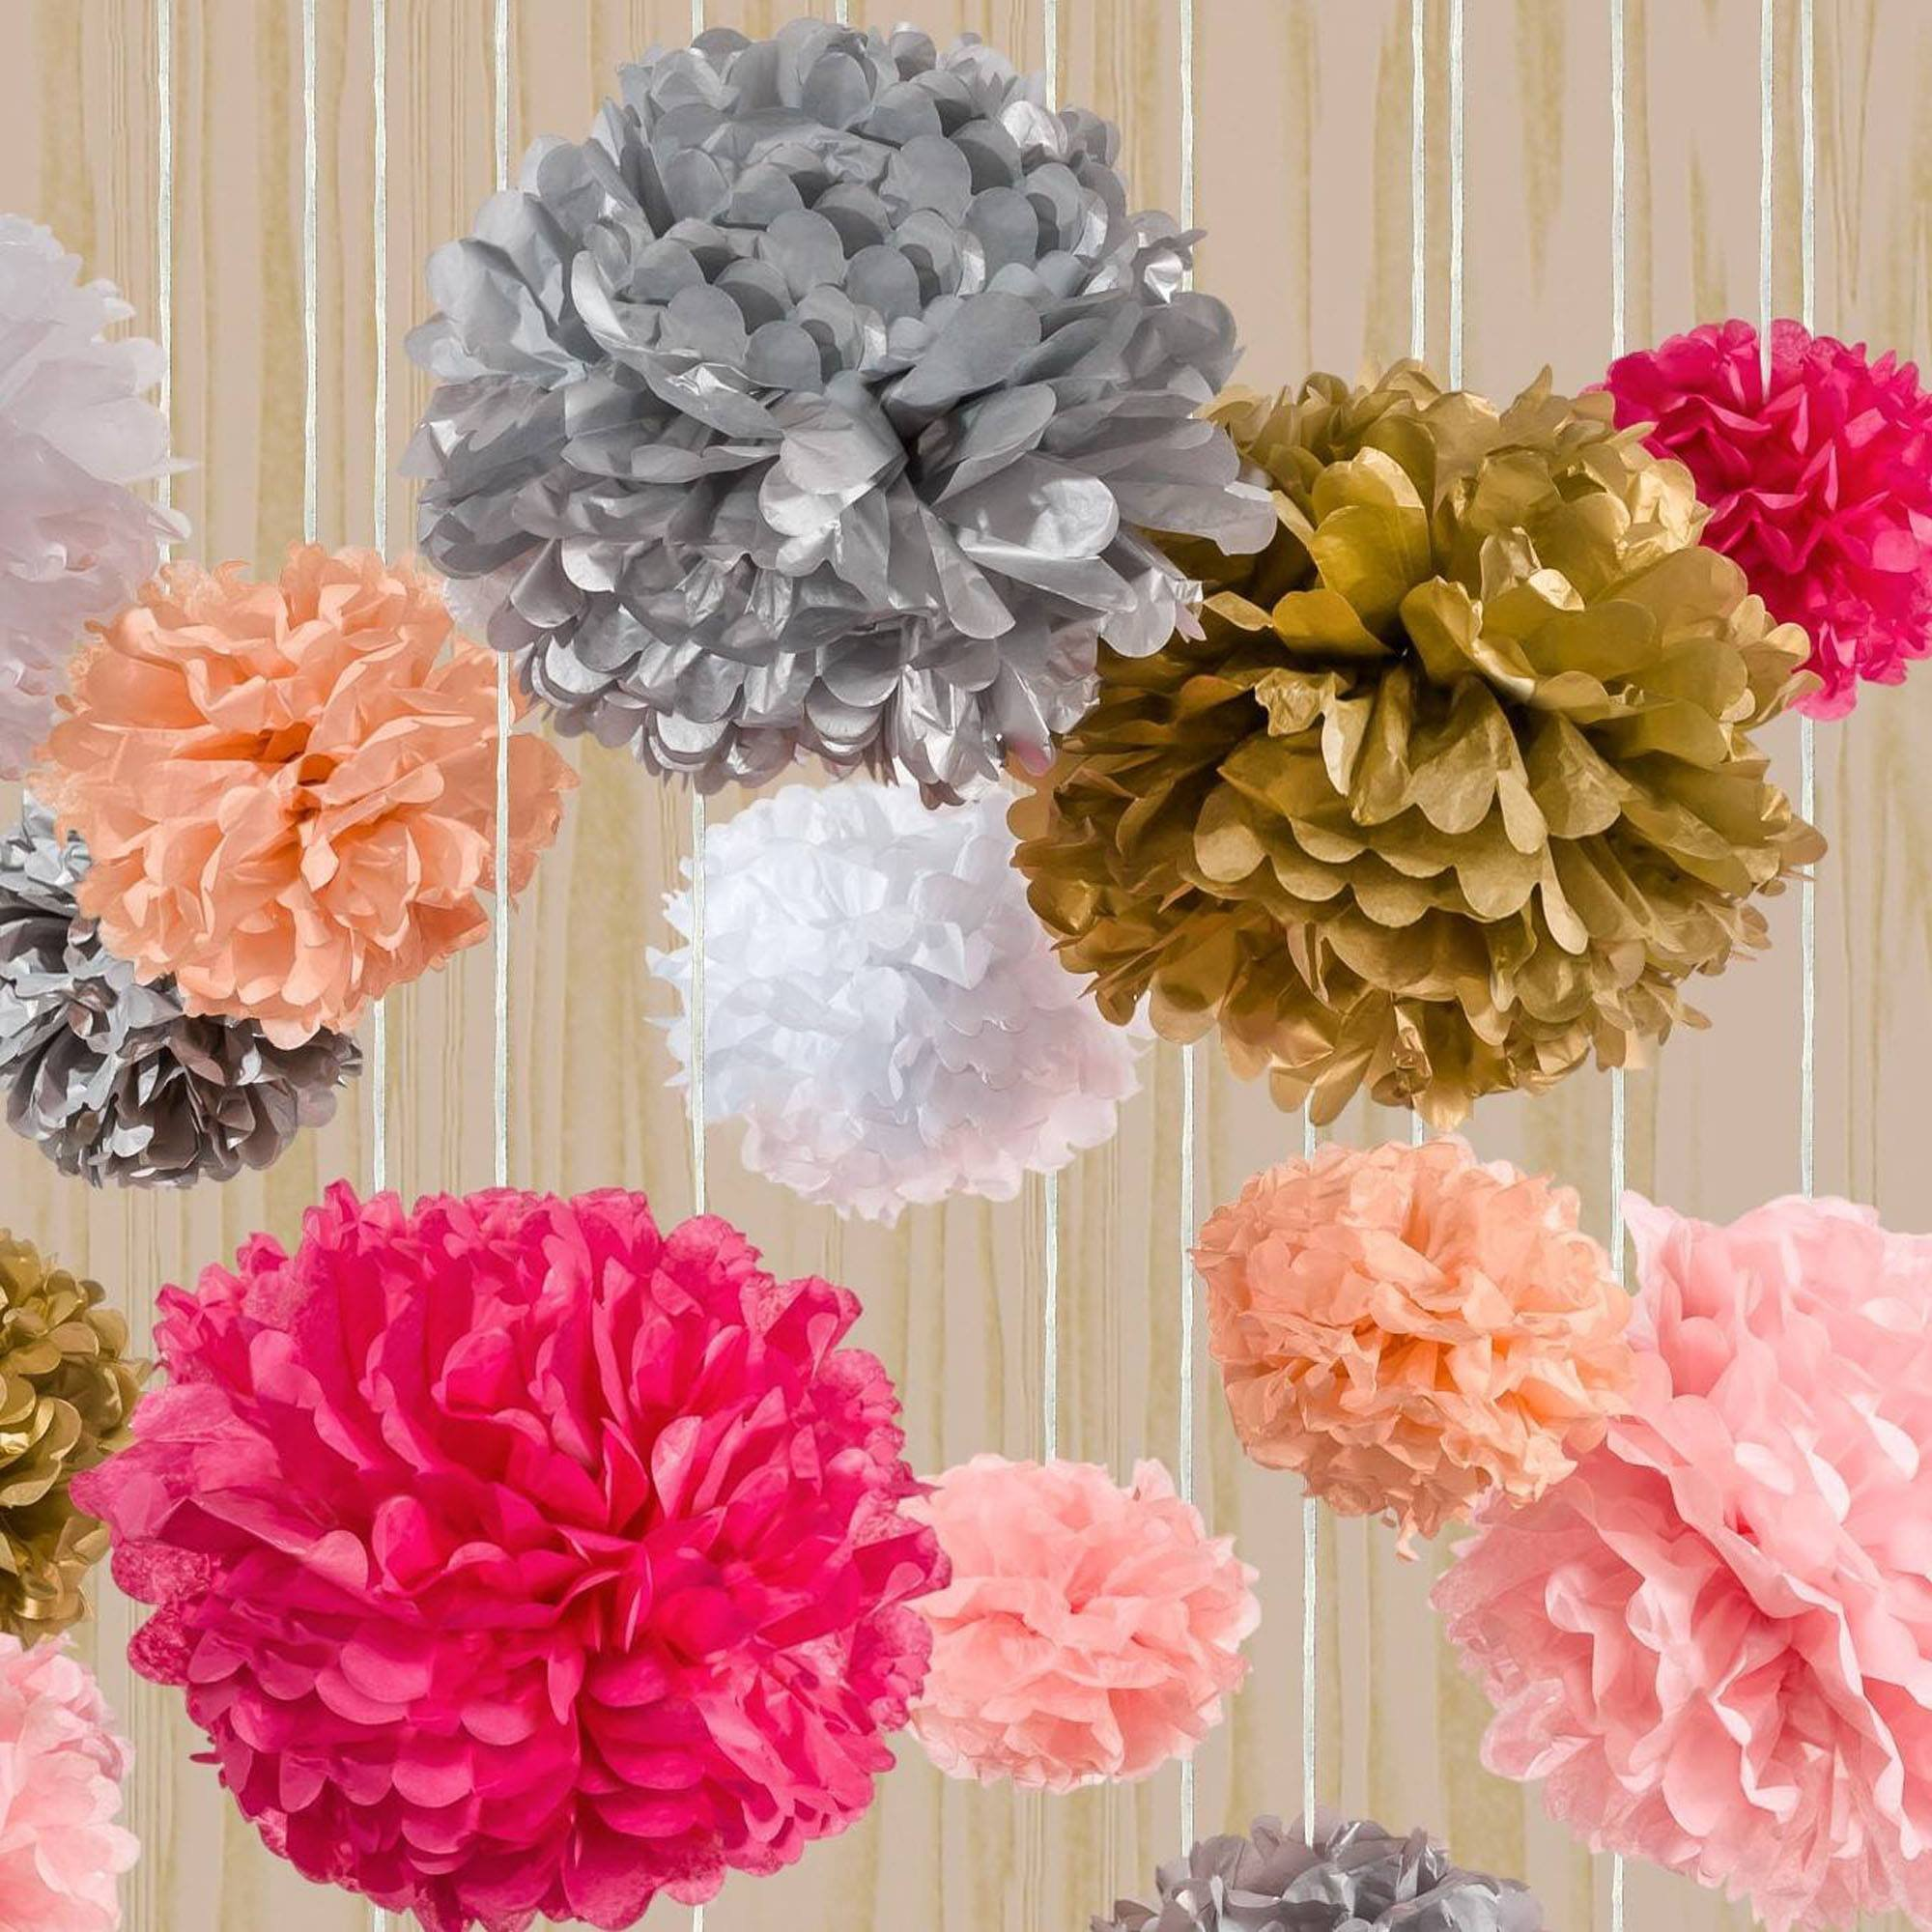 how to make flower pom poms from tissue paper Tissue paper crafts how to make tissue paper pom poms take 10 to 14 sheets of tissue paper and lay them flat i have used 20″ x 26″ paper for this project and this nice large size makes for a big full flower or pom you can cut your tissue paper to be different sizes for each flower to.